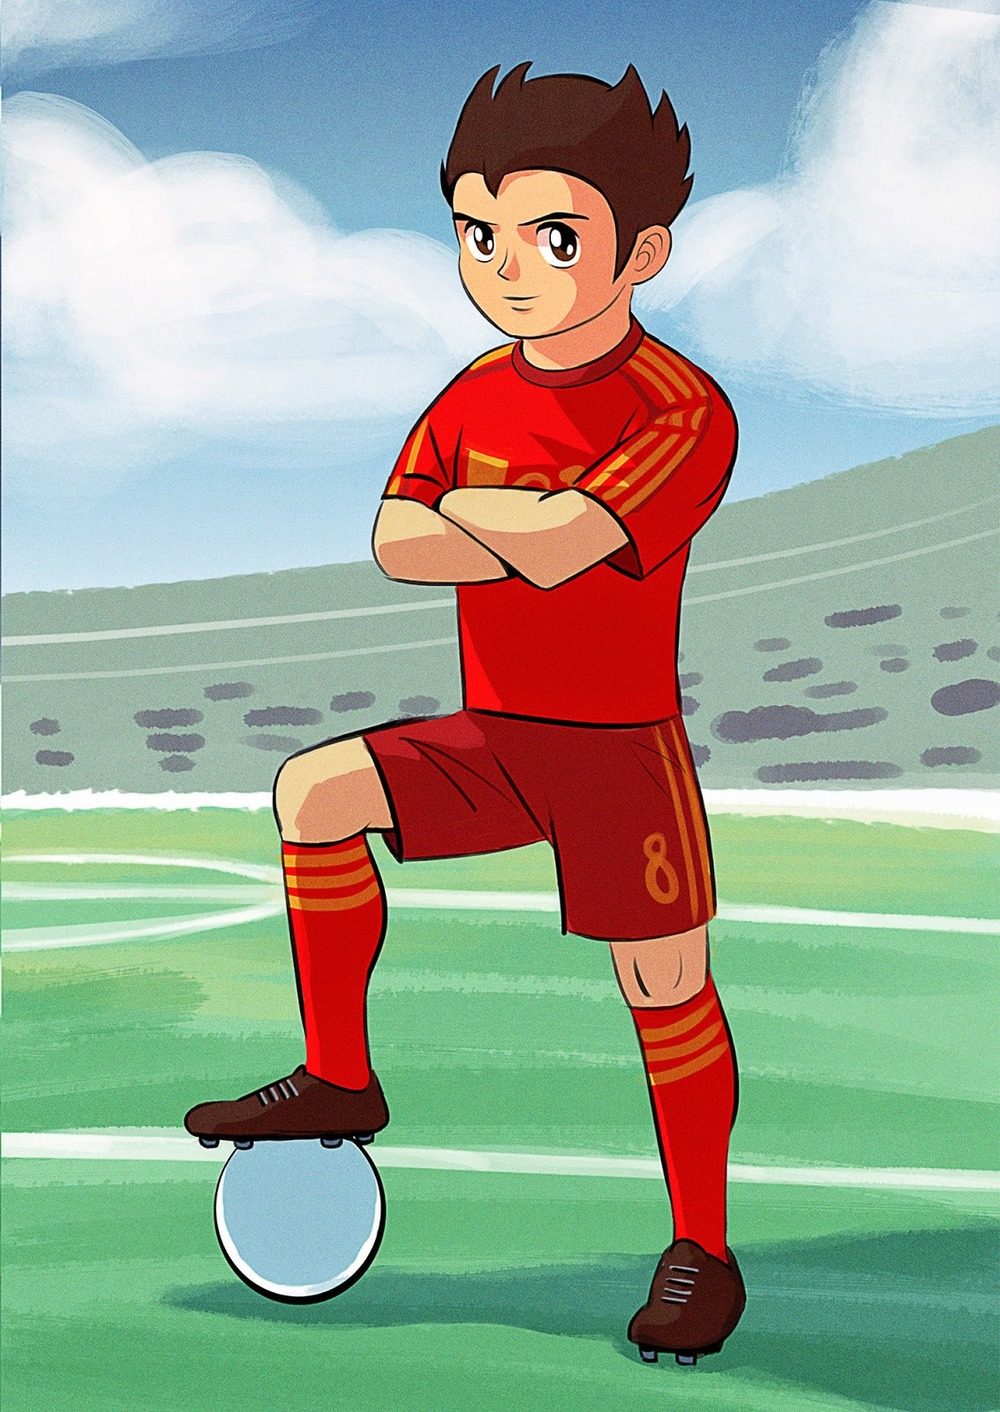 fifa_2014_kids_2characters_hero_spain_small.jpg